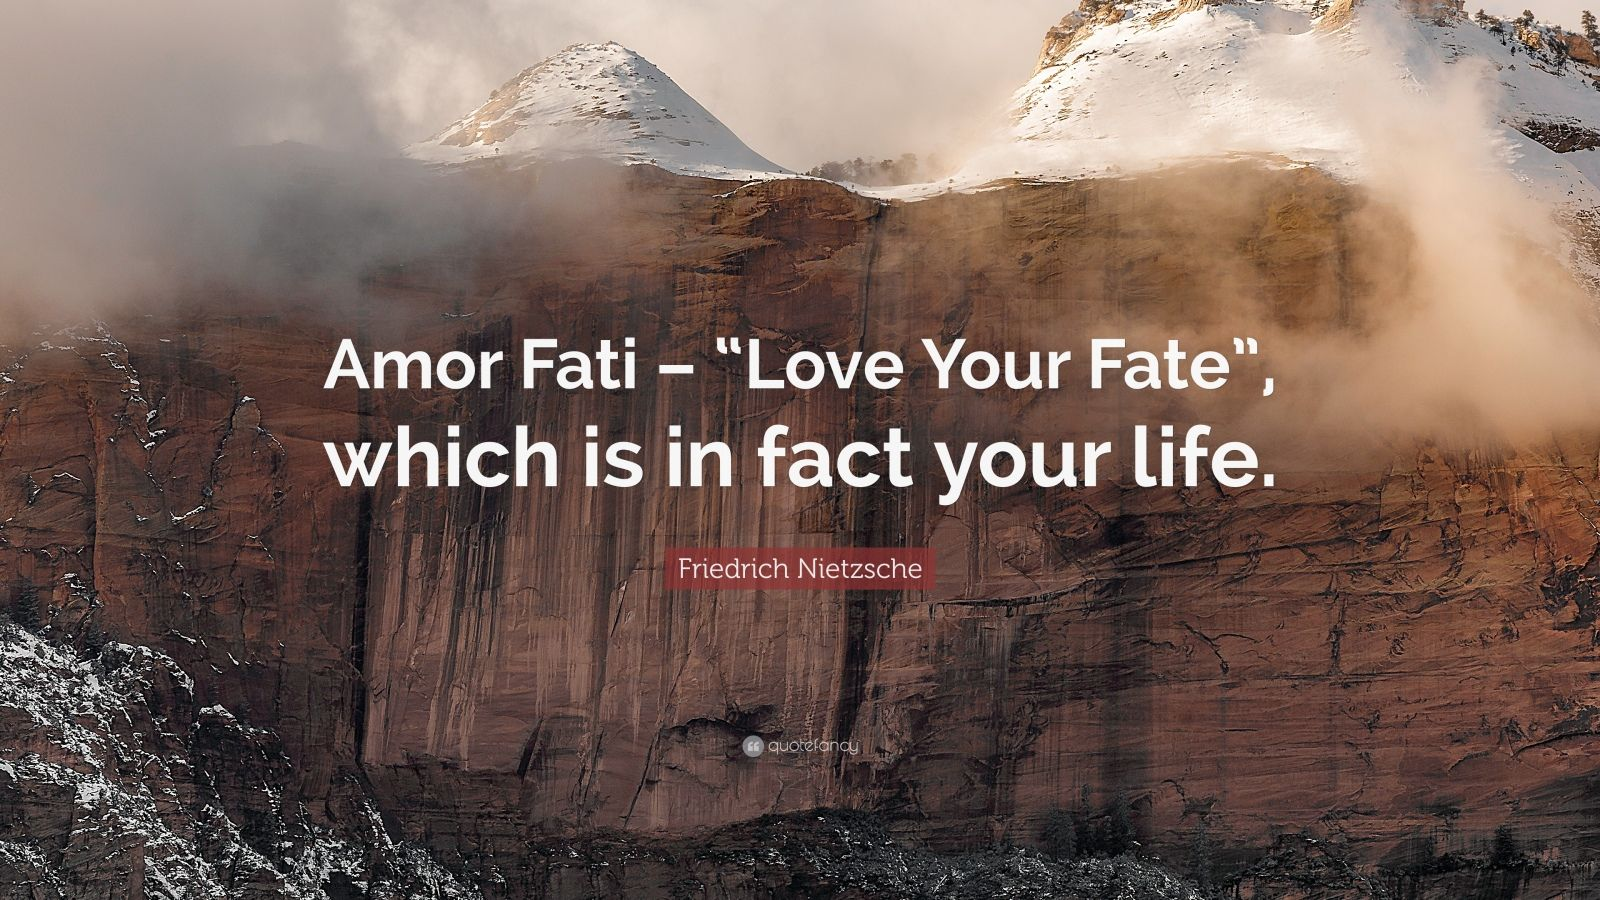 love your fate ffindo Meeting you was fate, becoming your friend was a choice, but falling in love with you was beyond my control author unknown who we meet for the most part is beyond out control.